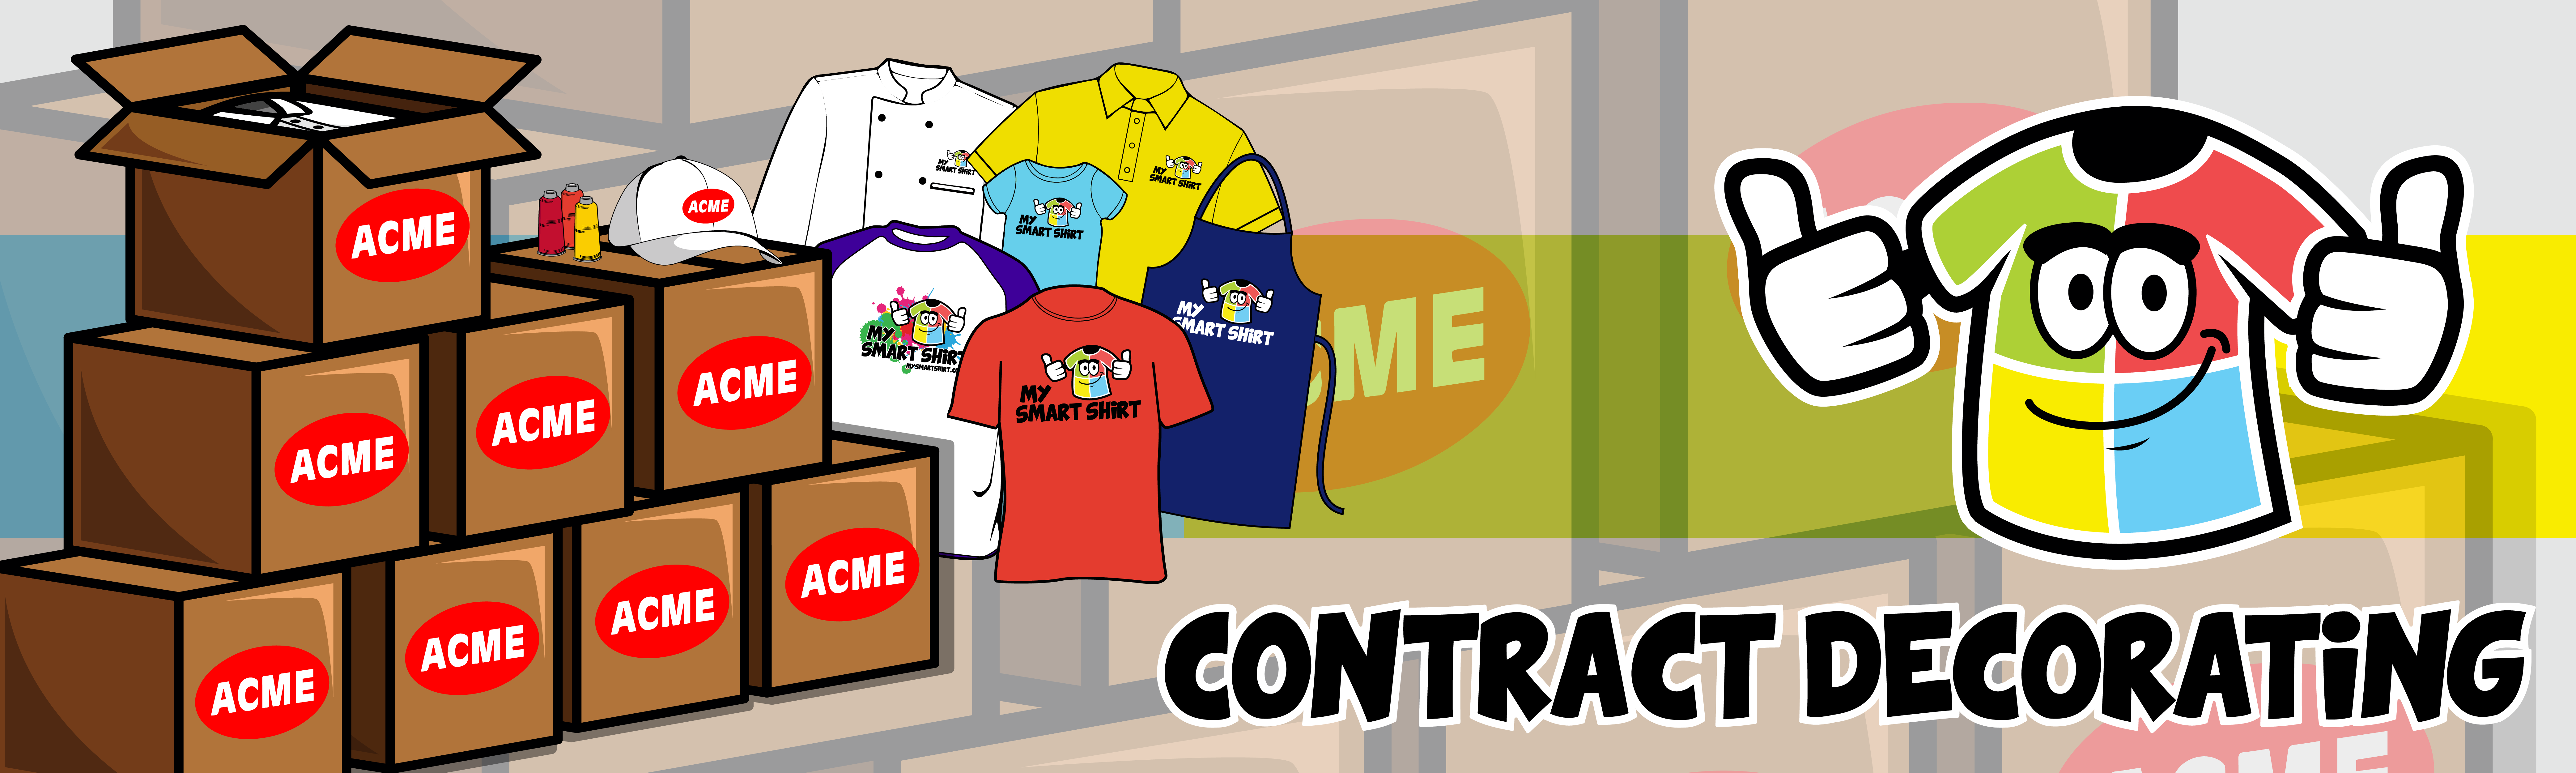 contract-decorating-banner